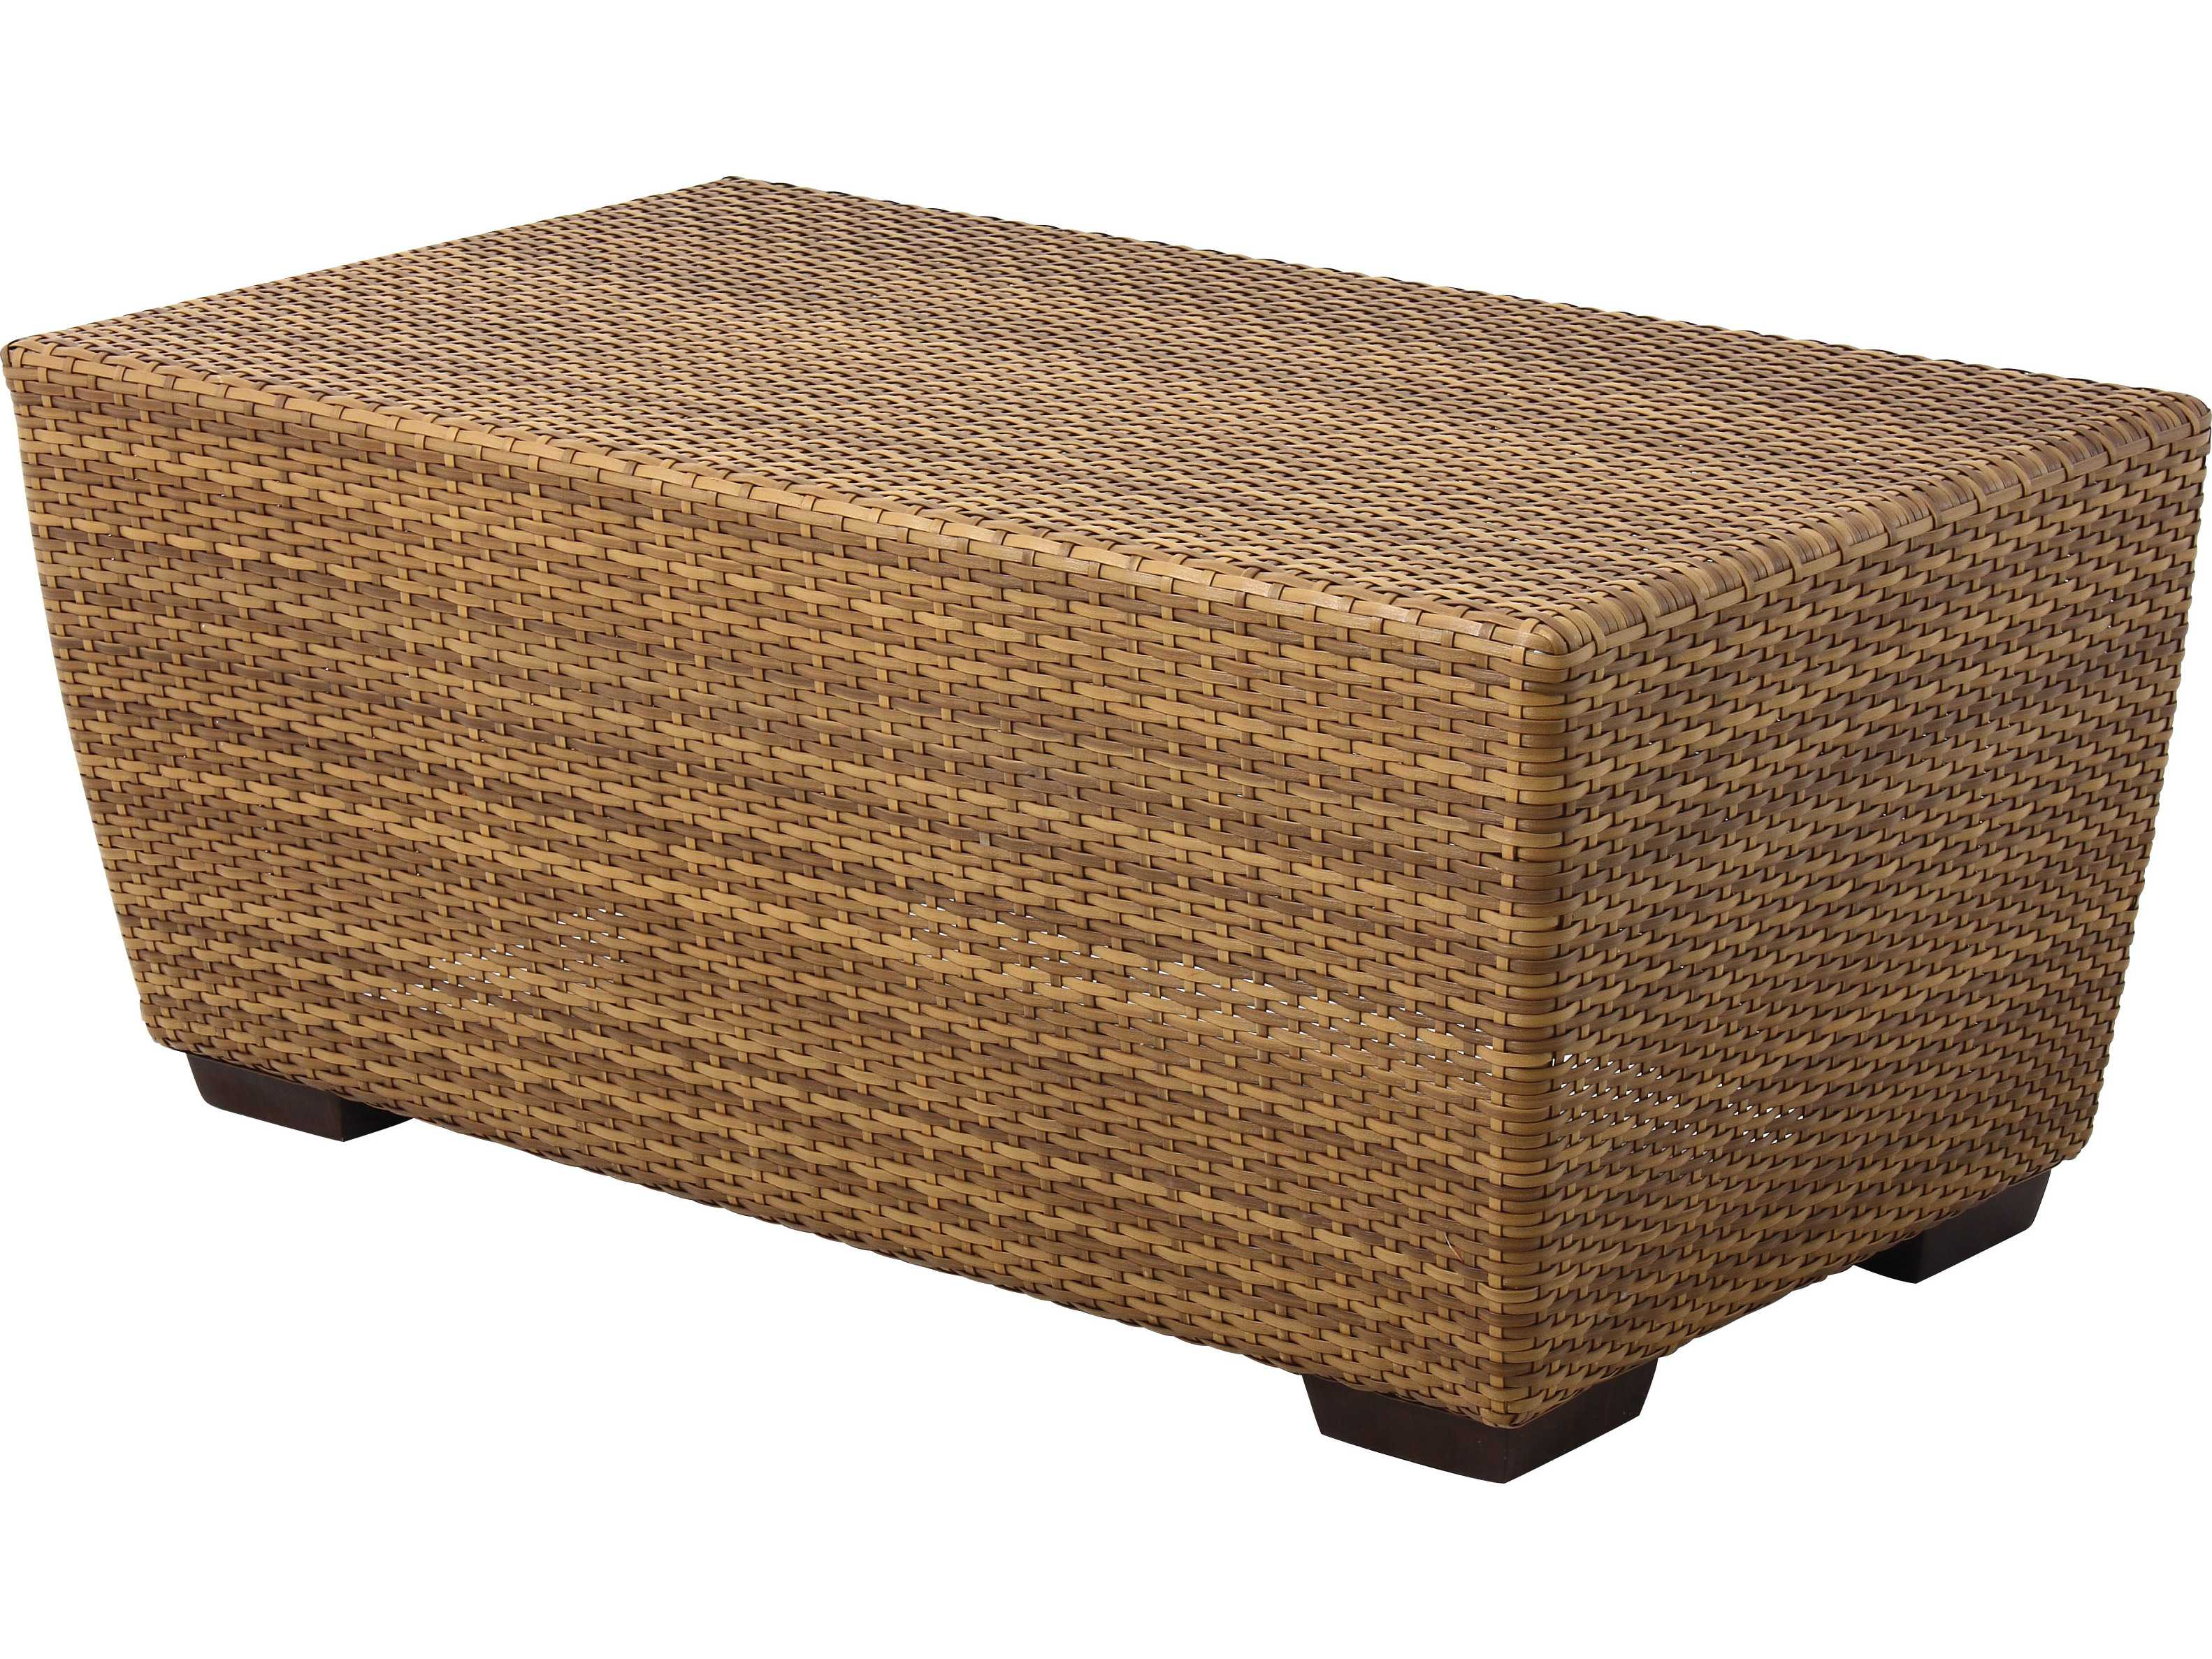 Whitecraft Saddleback Wicker Rectangular 42 X 24 Coffee Table